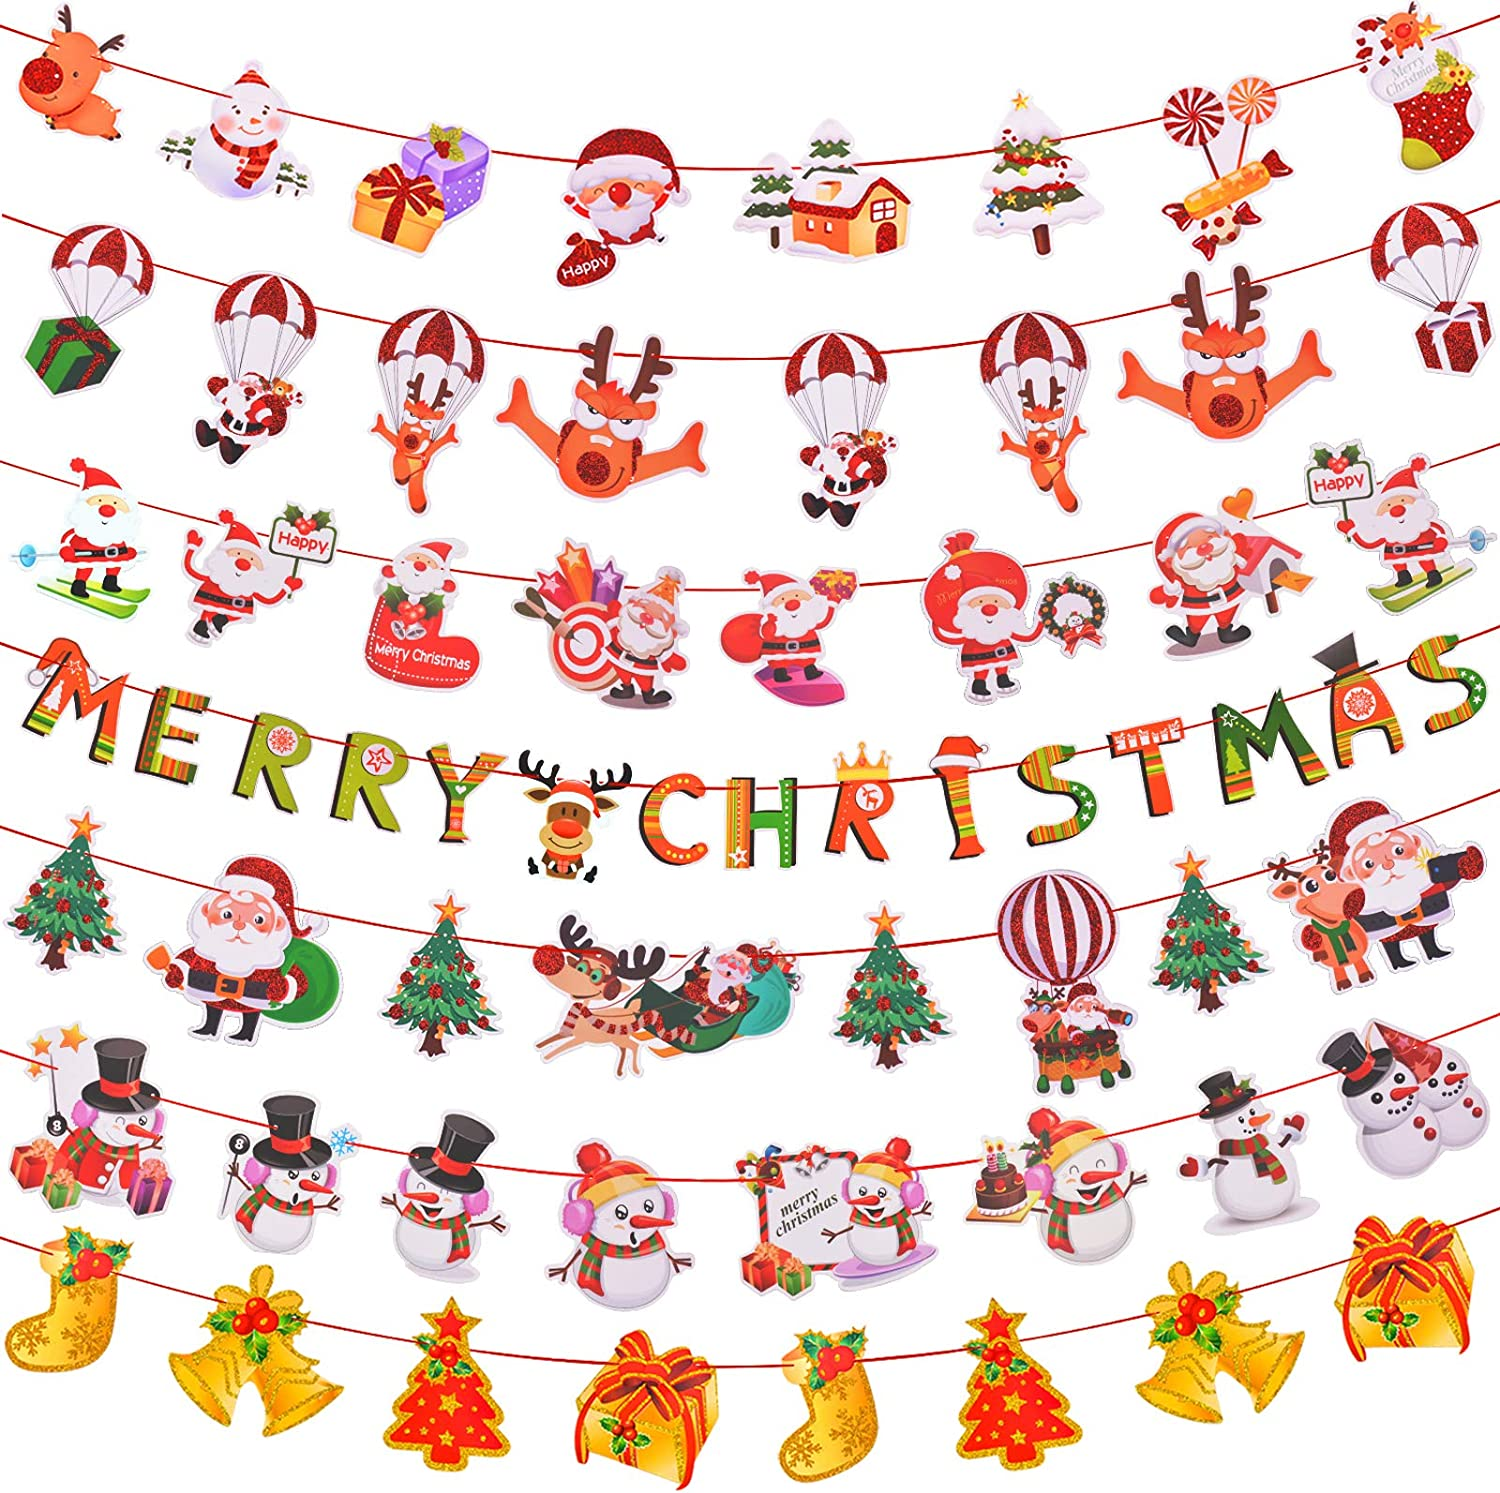 Christmas Banners Decoration Set Merry Christmas Banner Flag Christmas Tree Elk Letter Christmas Stockings Hanging Party Flags Holiday Home Outdoor New Year Decor